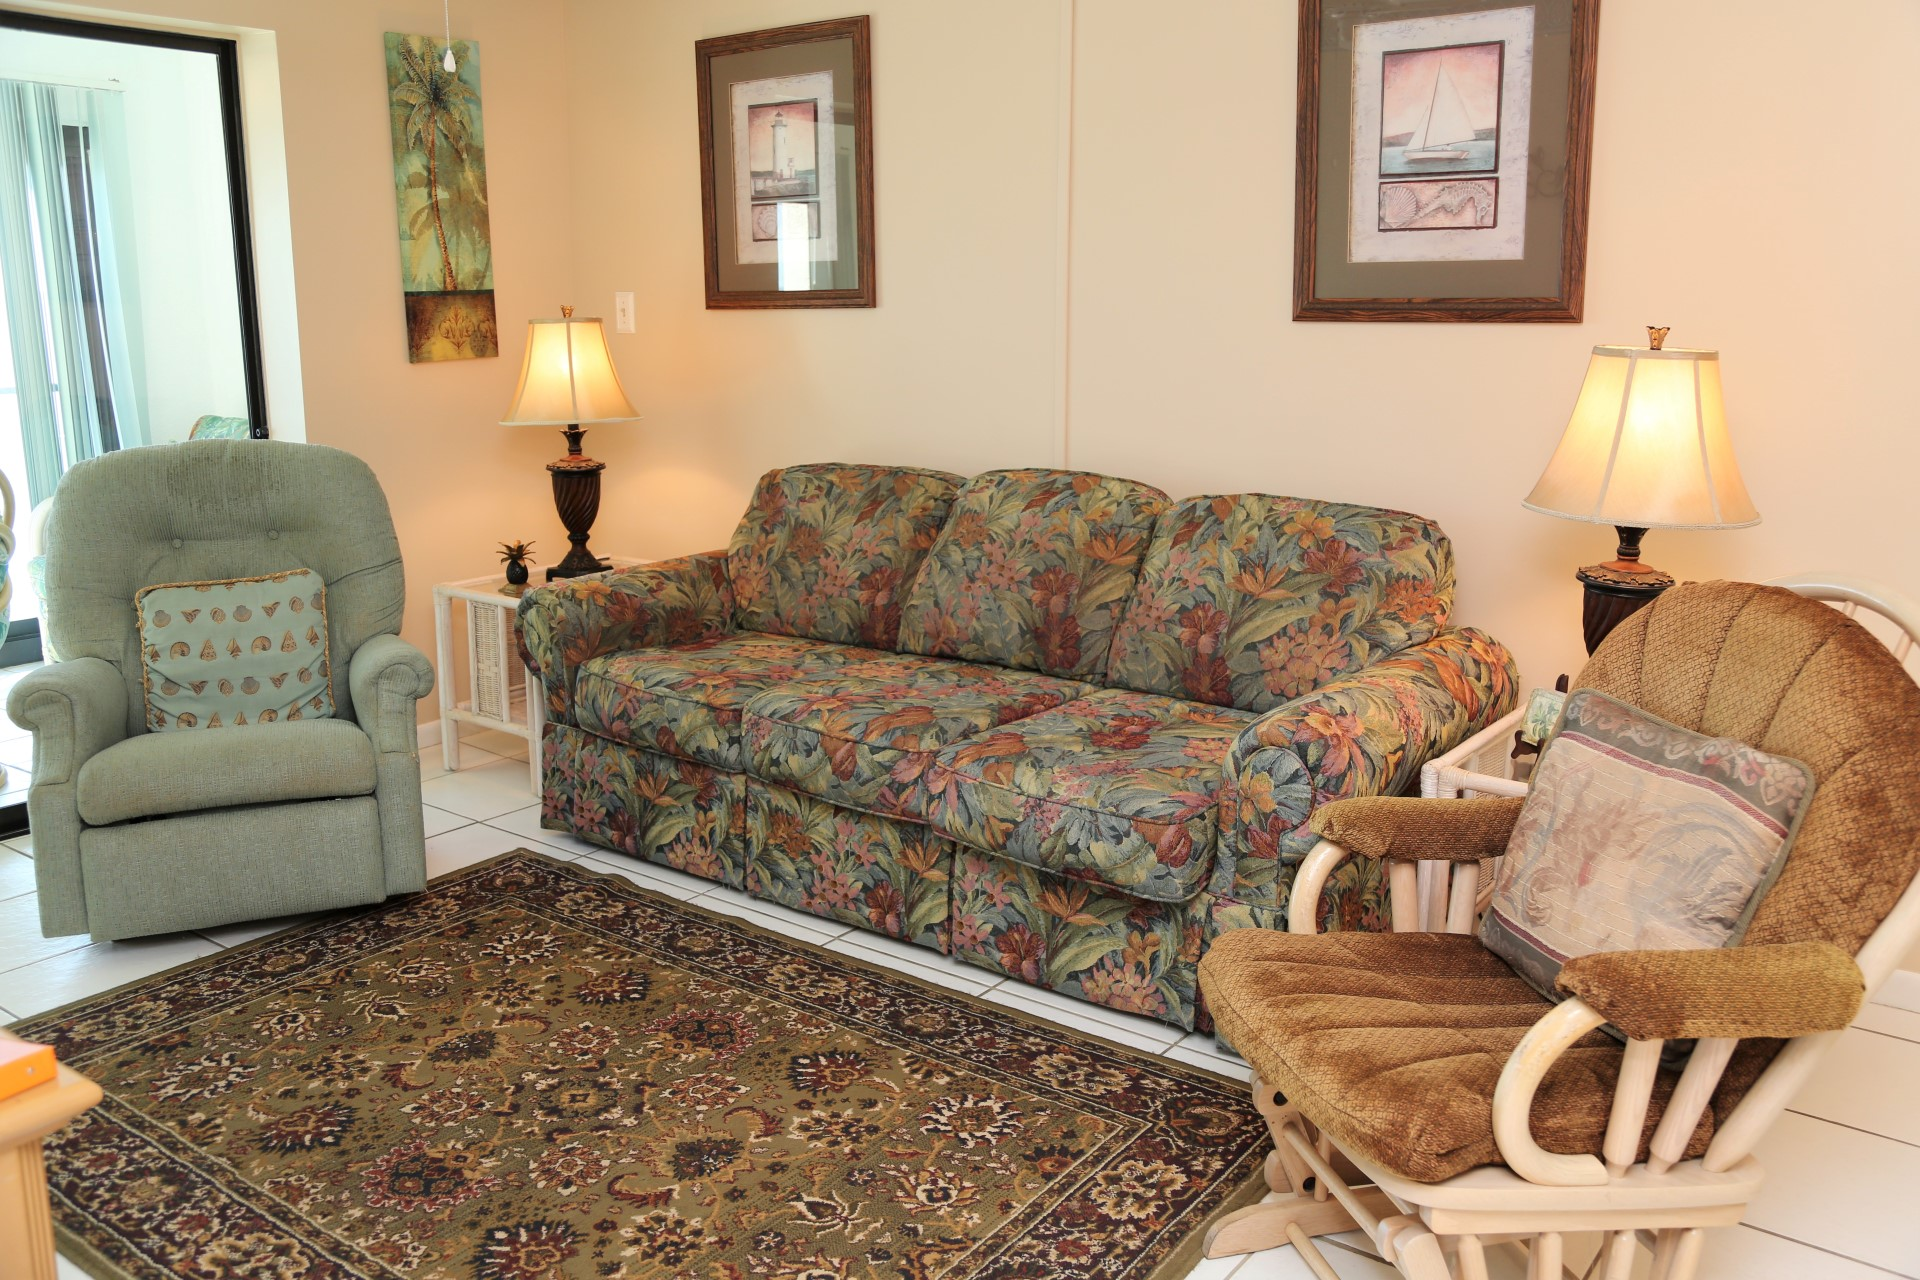 Plenty of seating available in the living room.